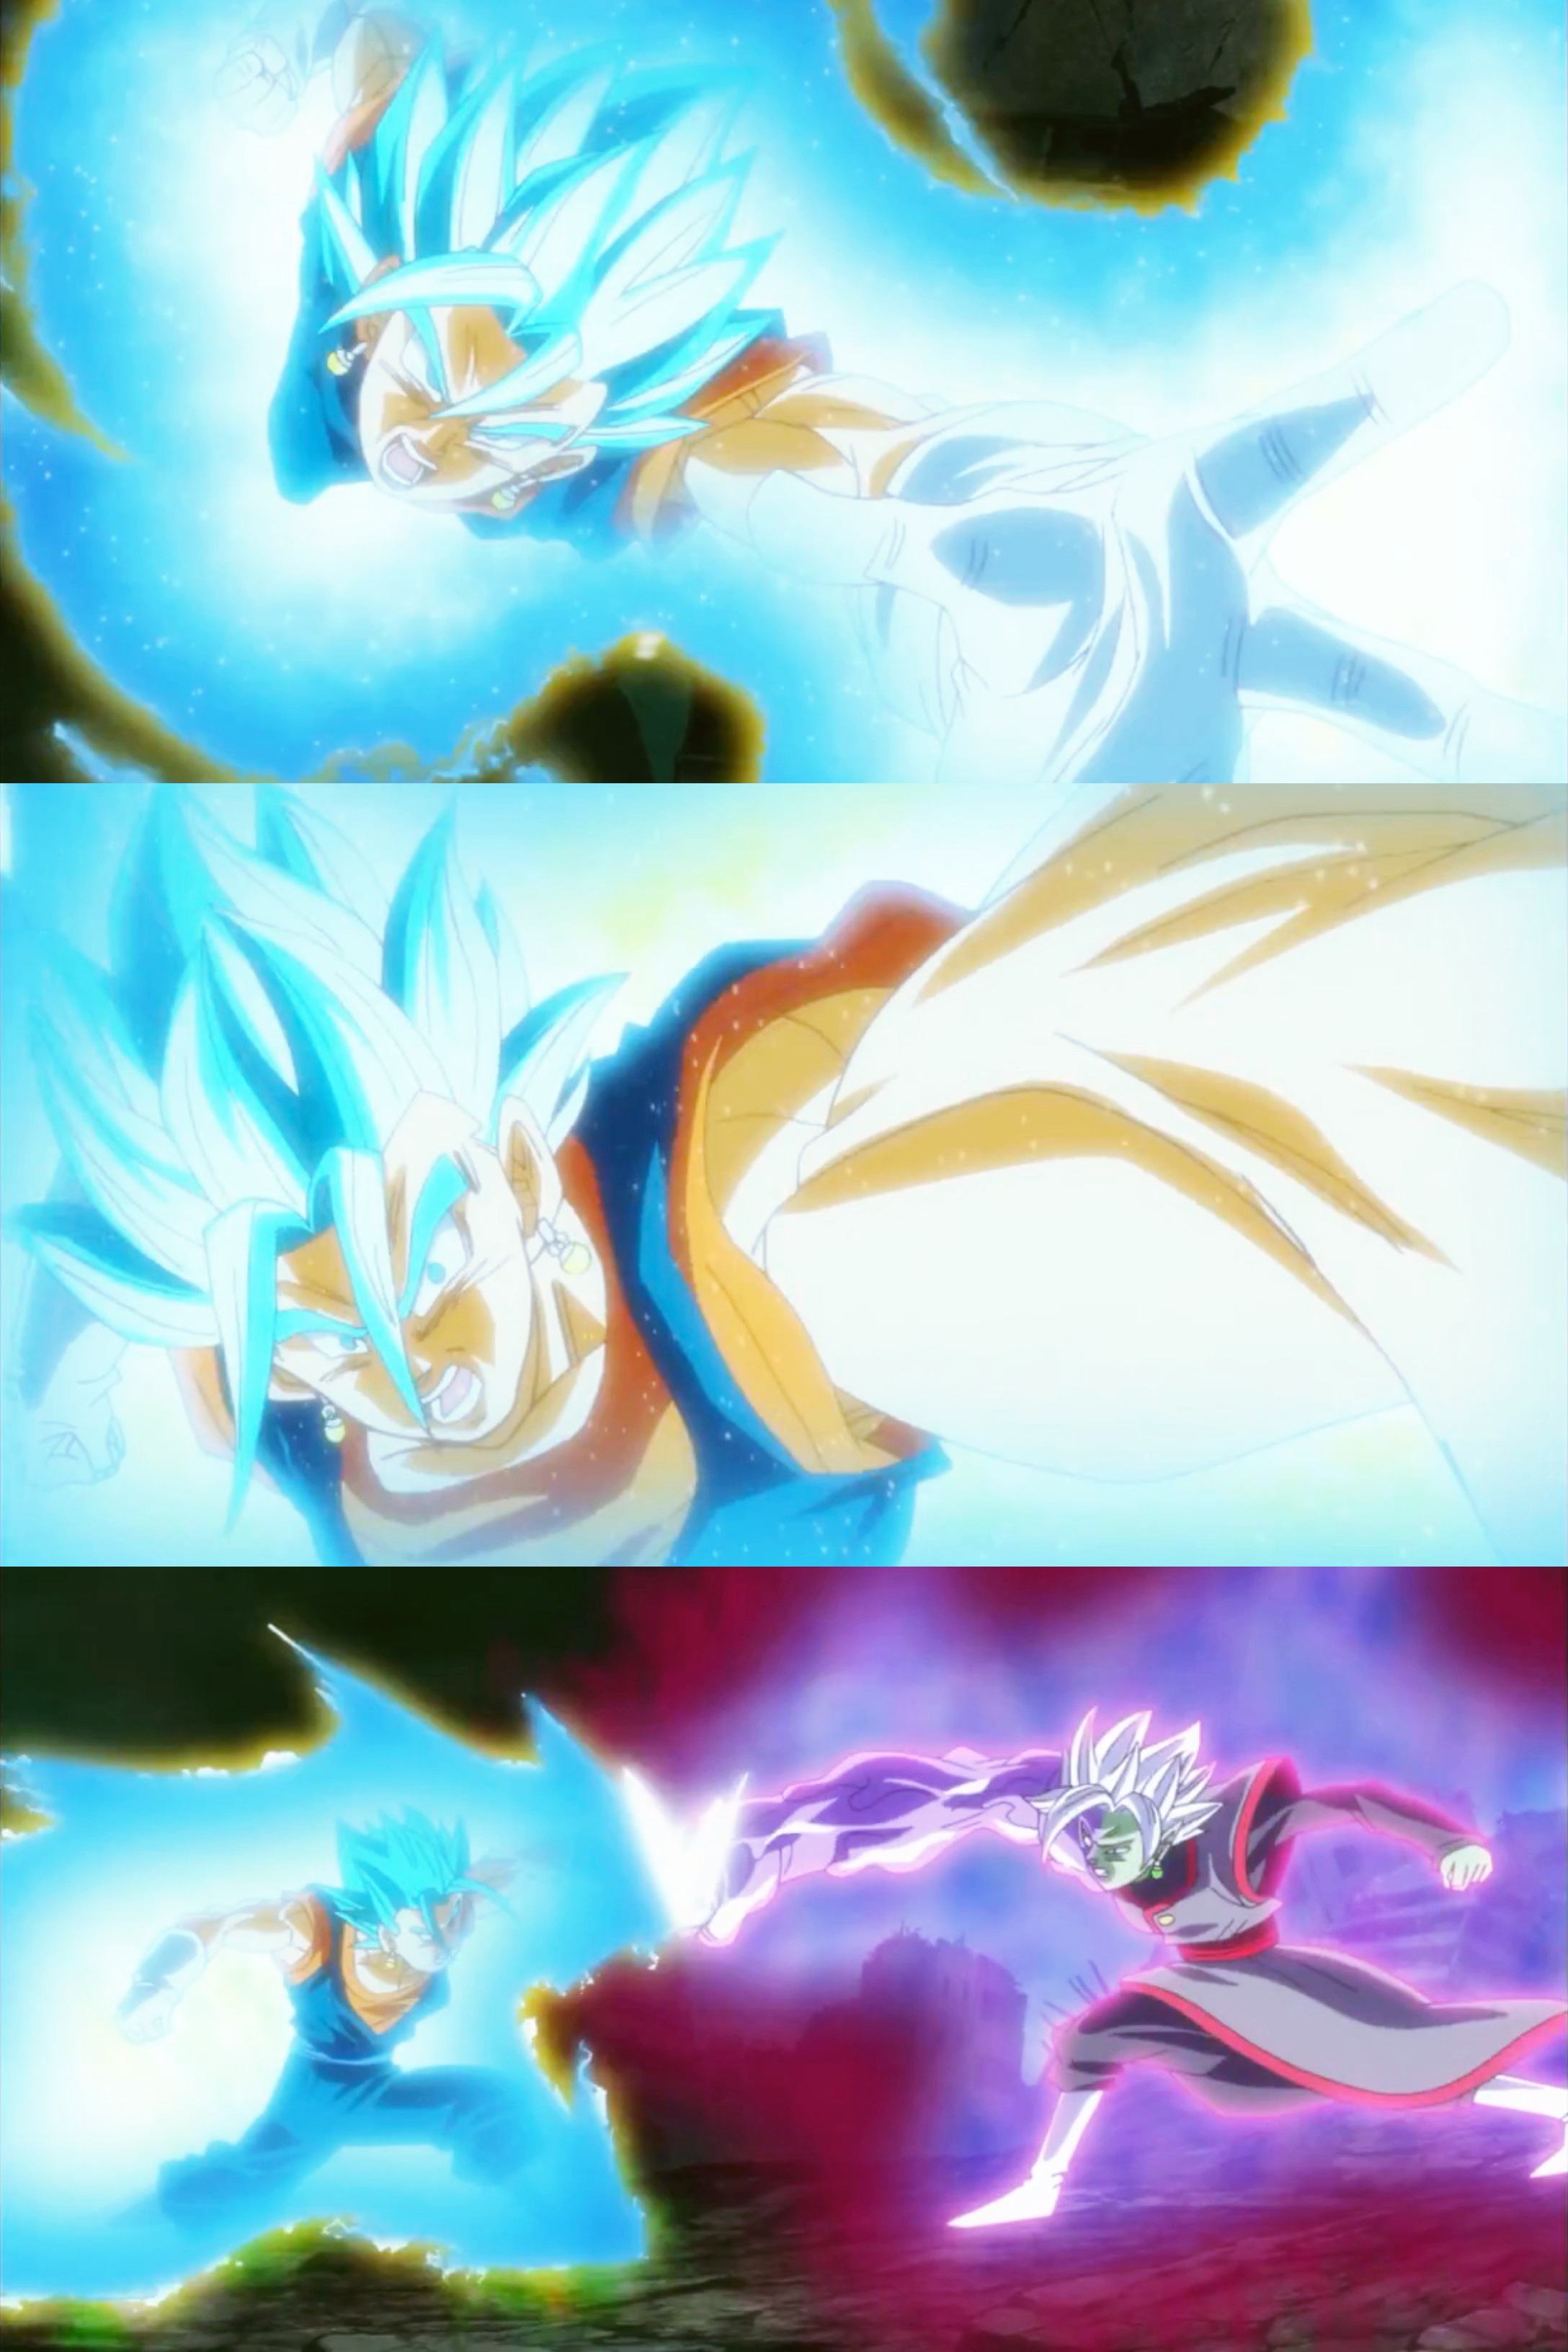 Epic-Vegito-Blue-Vs-Zamasu-iPhone-made-with-Moldiv-app-enjoy-wallpaper-wp5007155